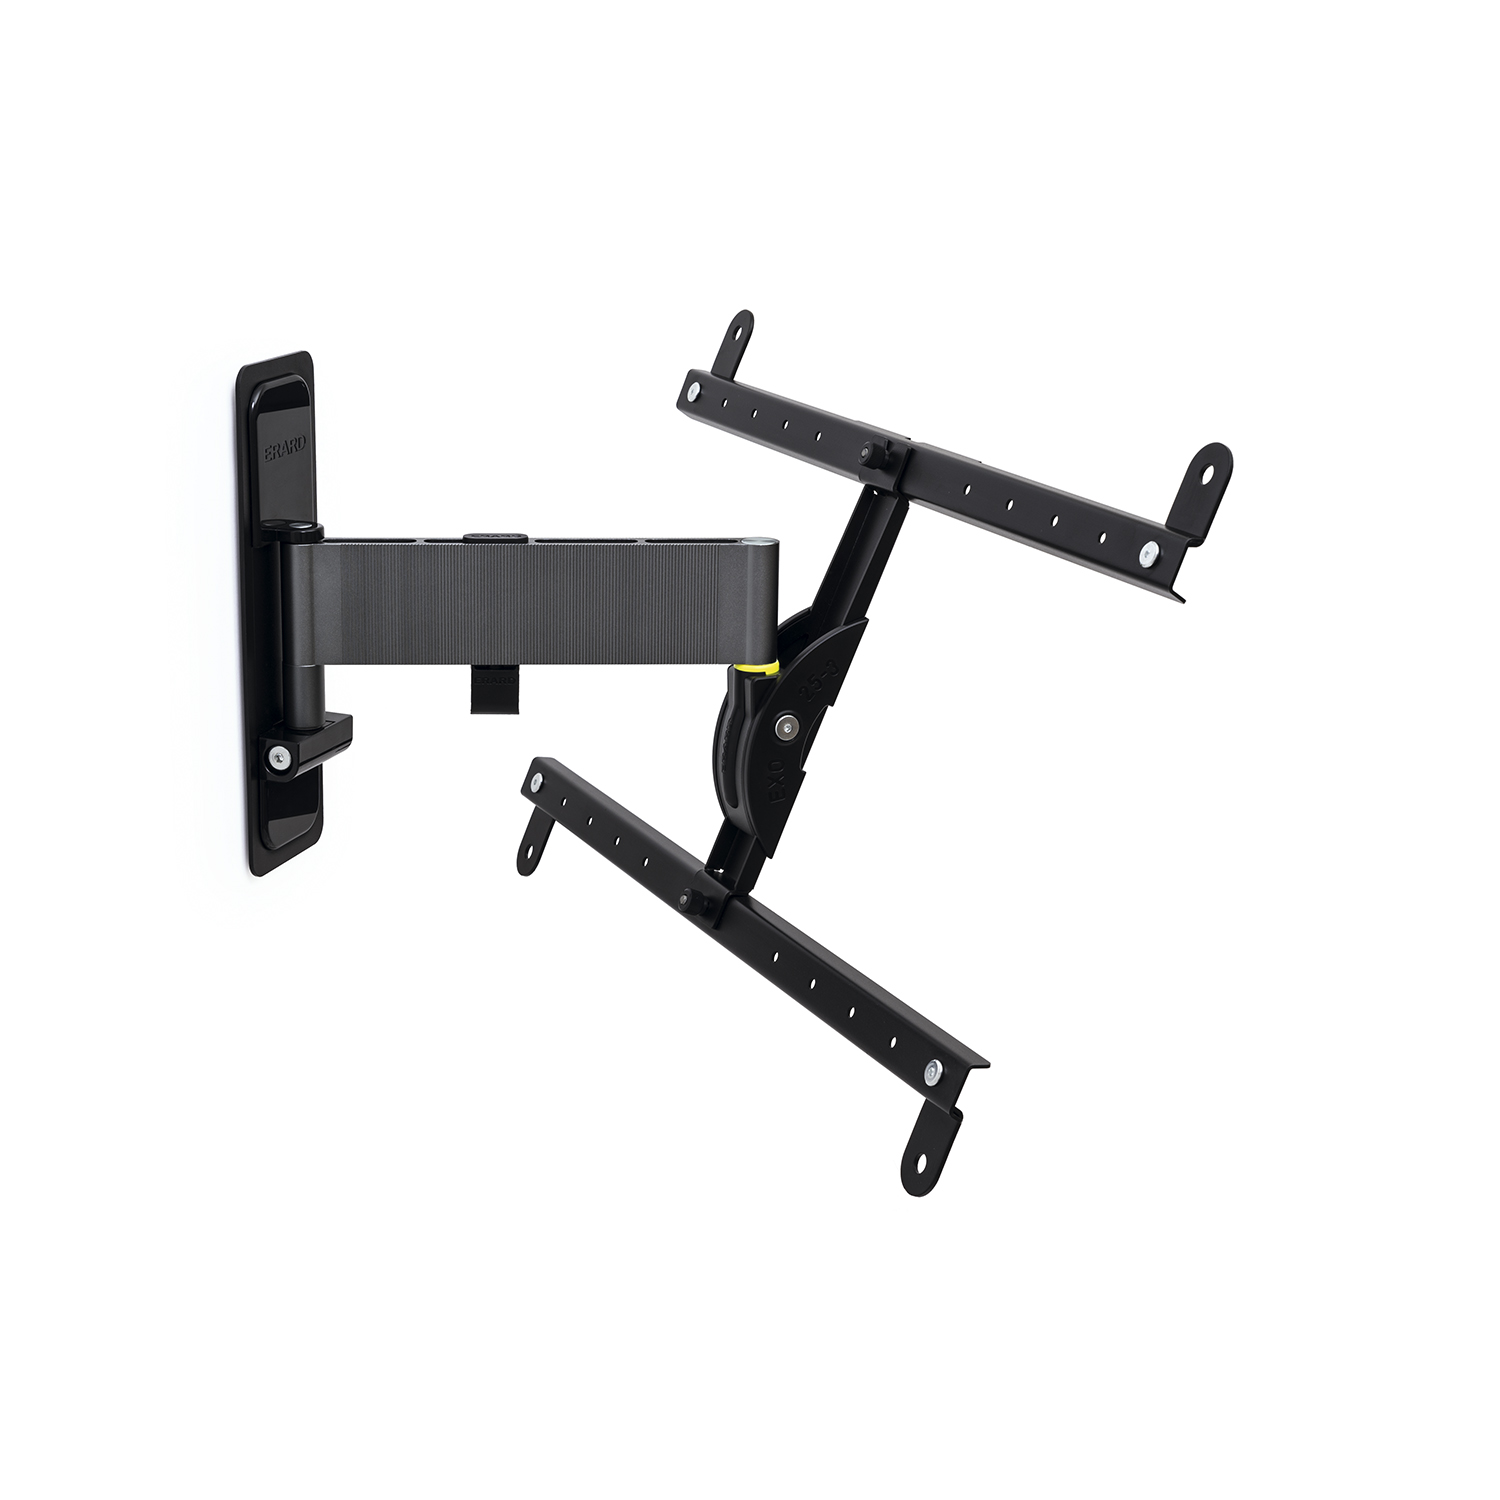 EXO 600TW2 - support mural inclinable orientable